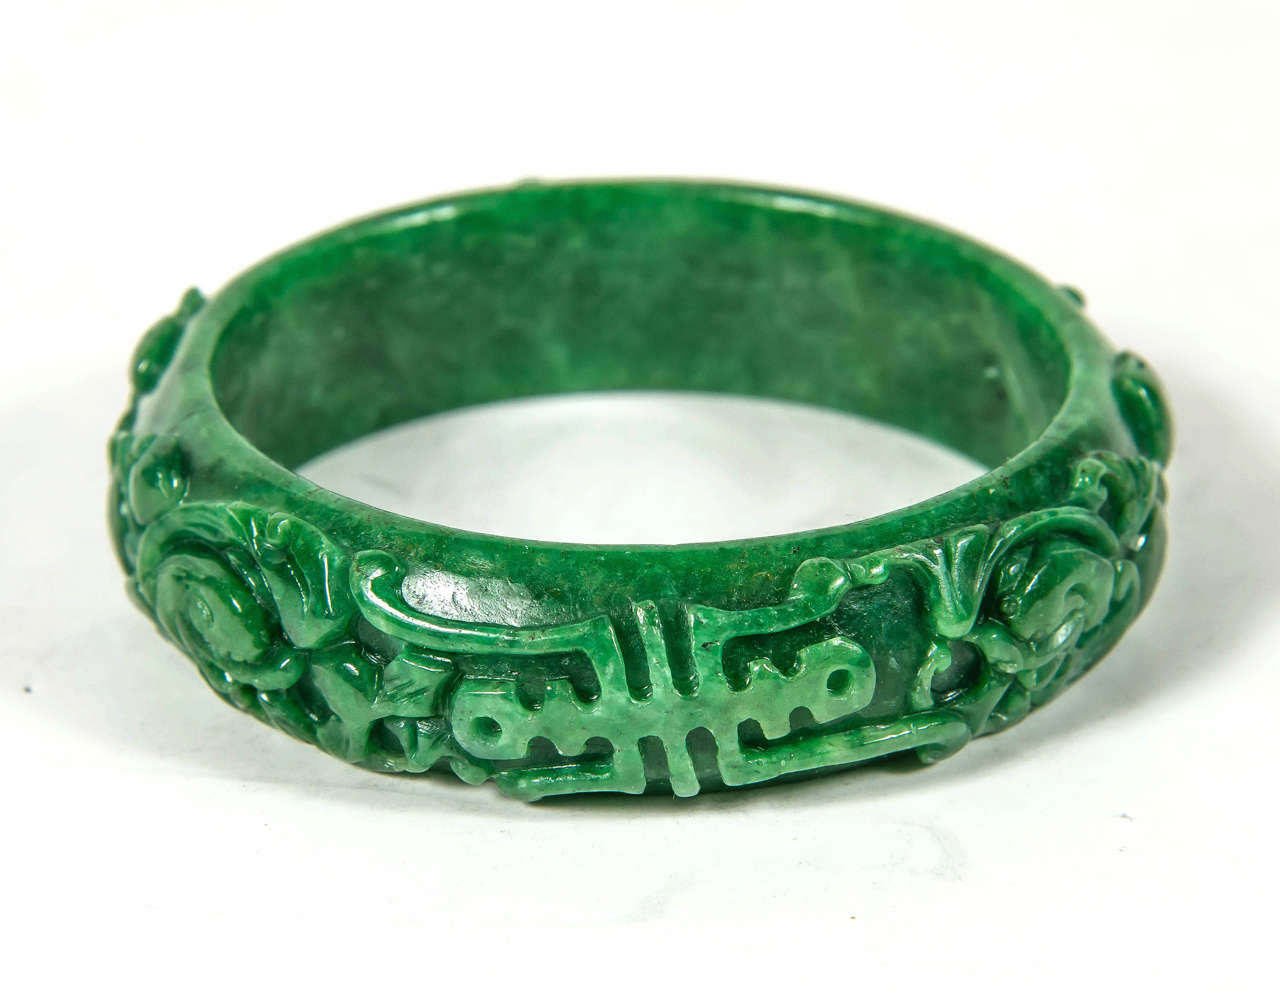 This hand carved Chinese Stone  bracelet feature a stylized floral and scroll design executed in fine hand carved jade.